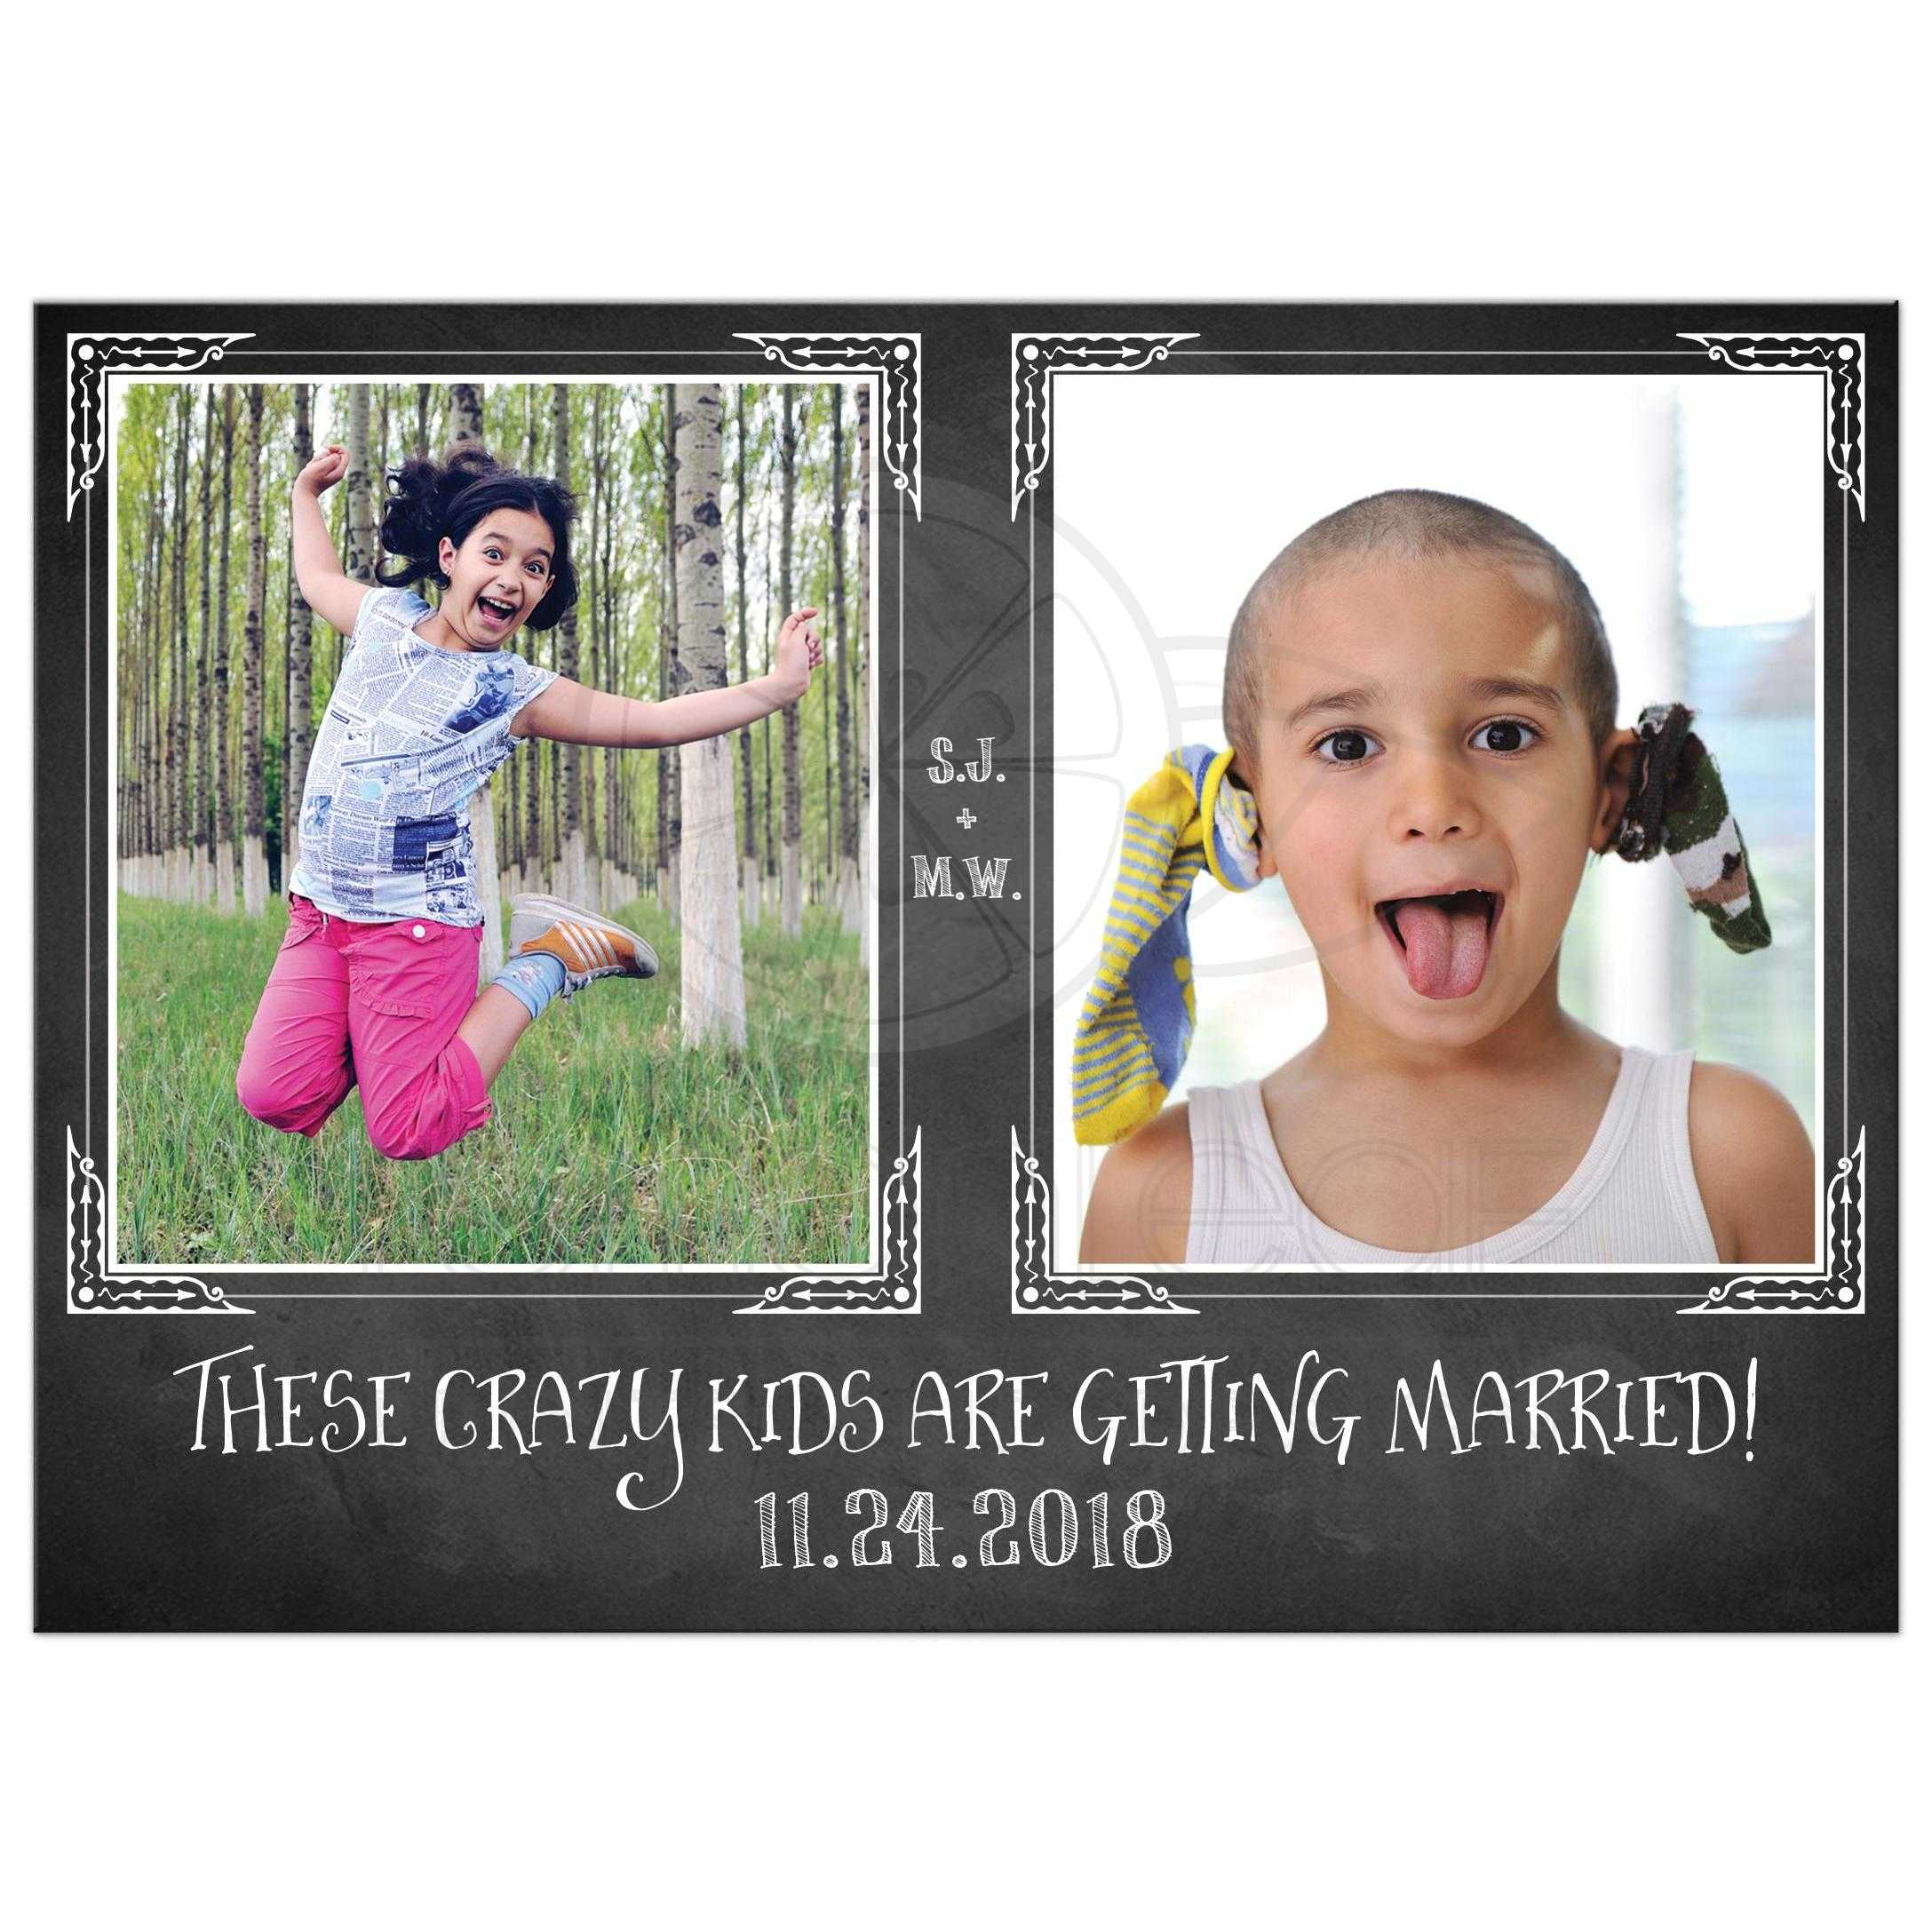 Crazy Kids Photo Template Wedding Save the Date Card | Faux ...